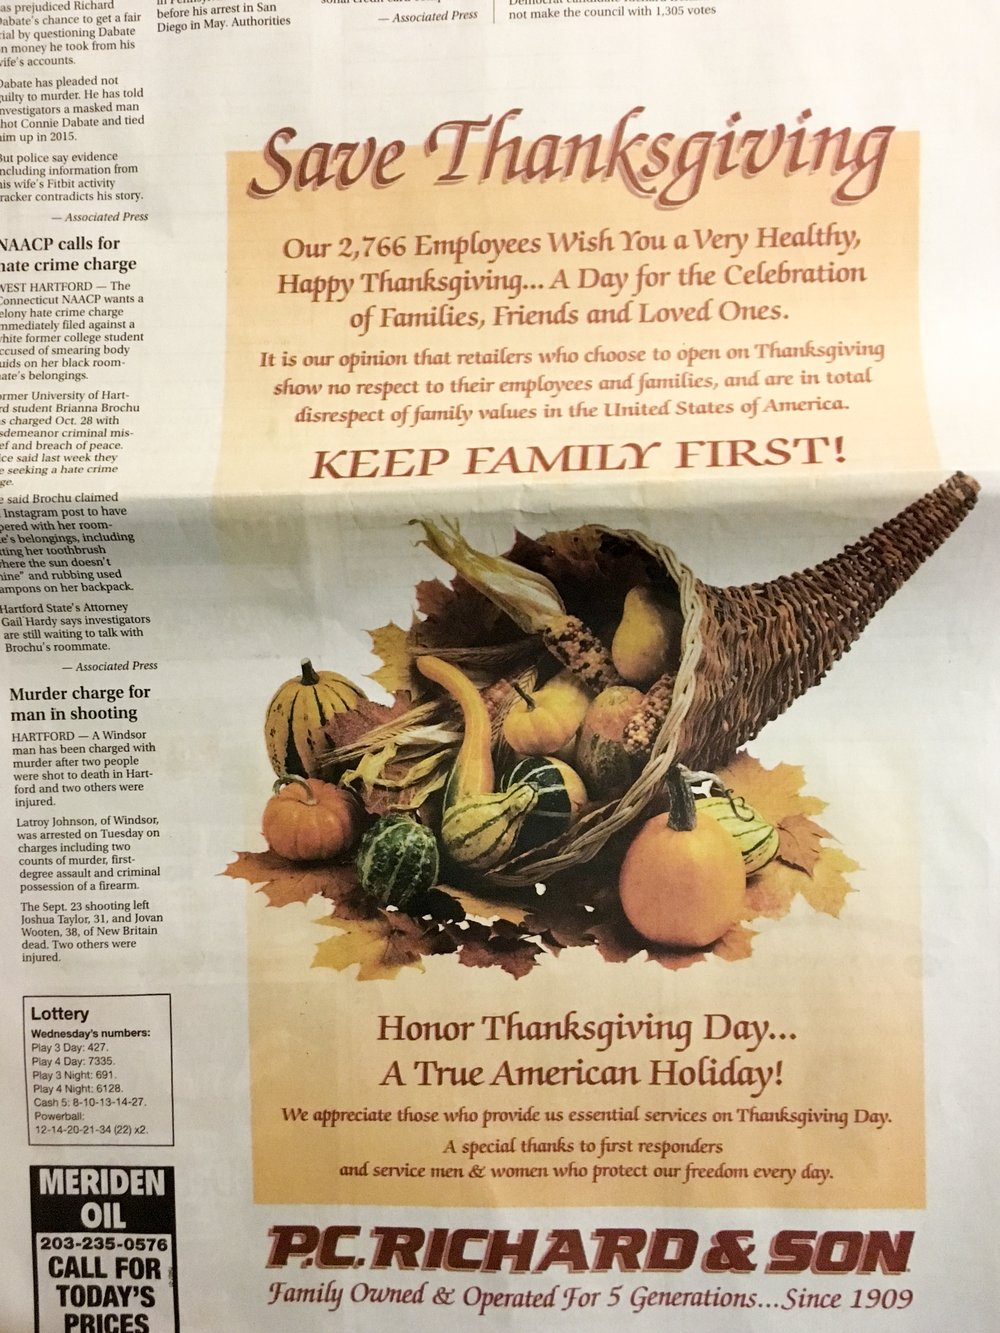 A P.C. Richard & Son advertisement from this past Thanksgiving in the Meriden Record Journal. Photo by Lindsay Pytel.